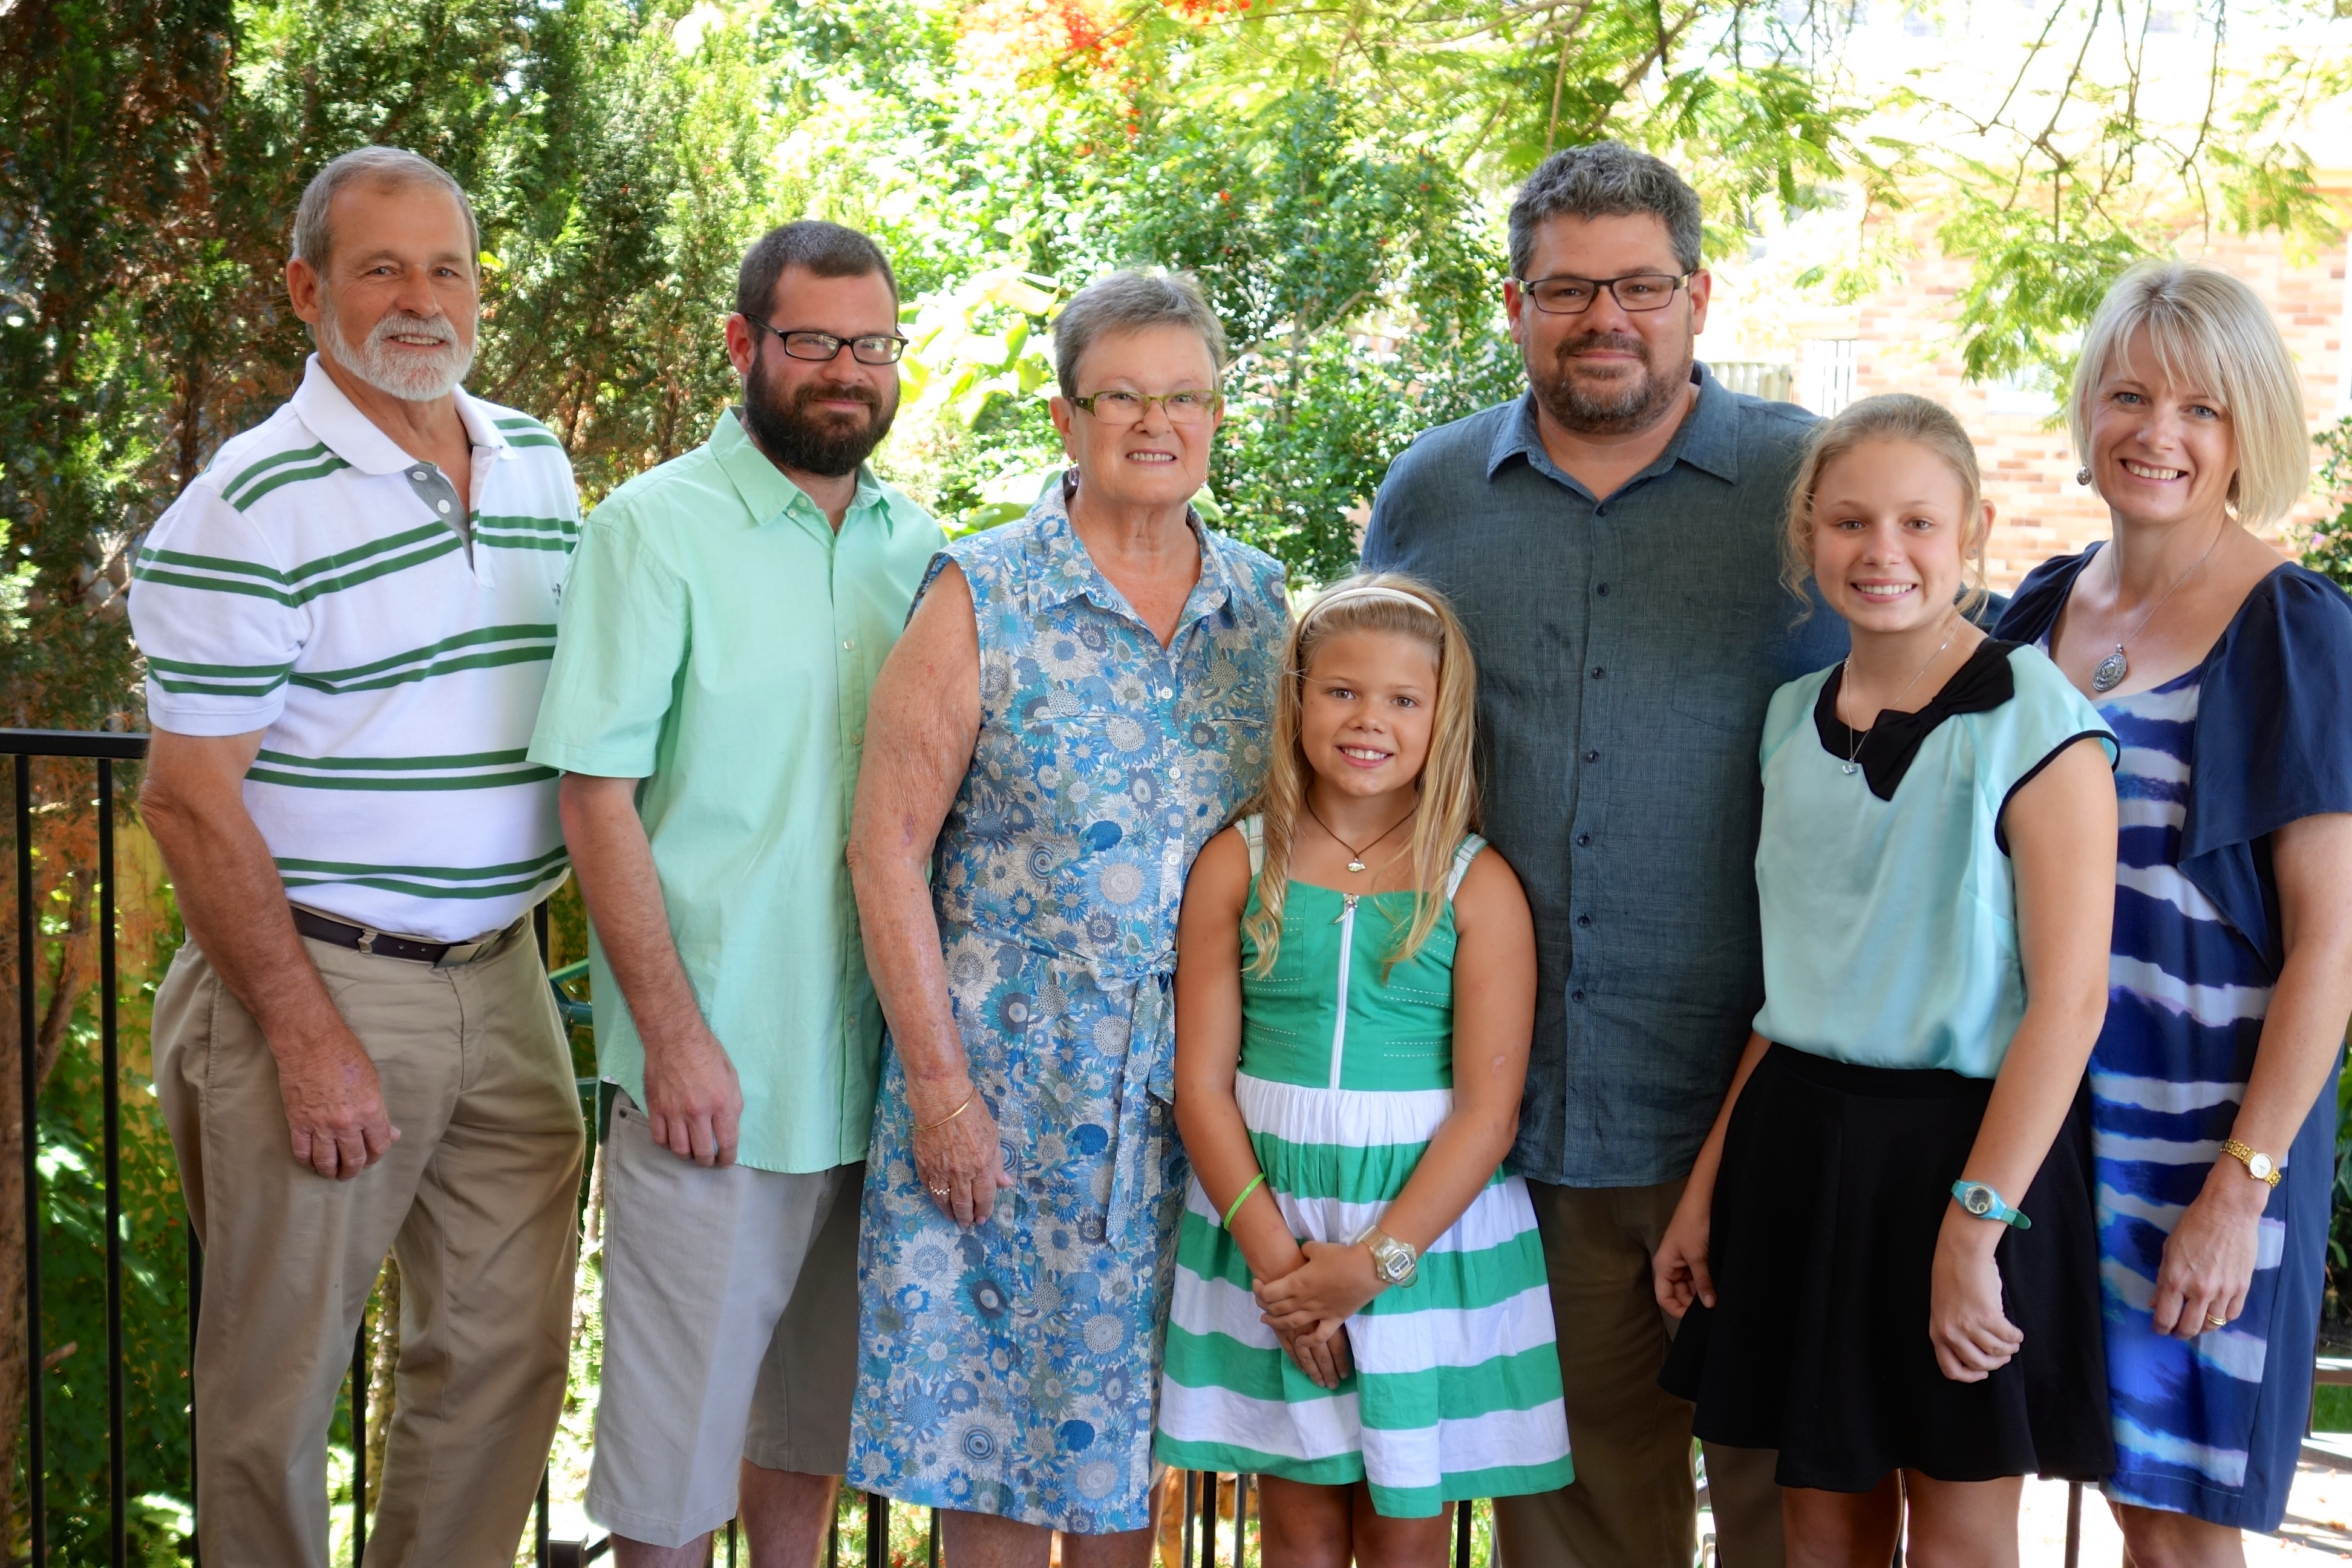 The Anne and Trevor Schramm families